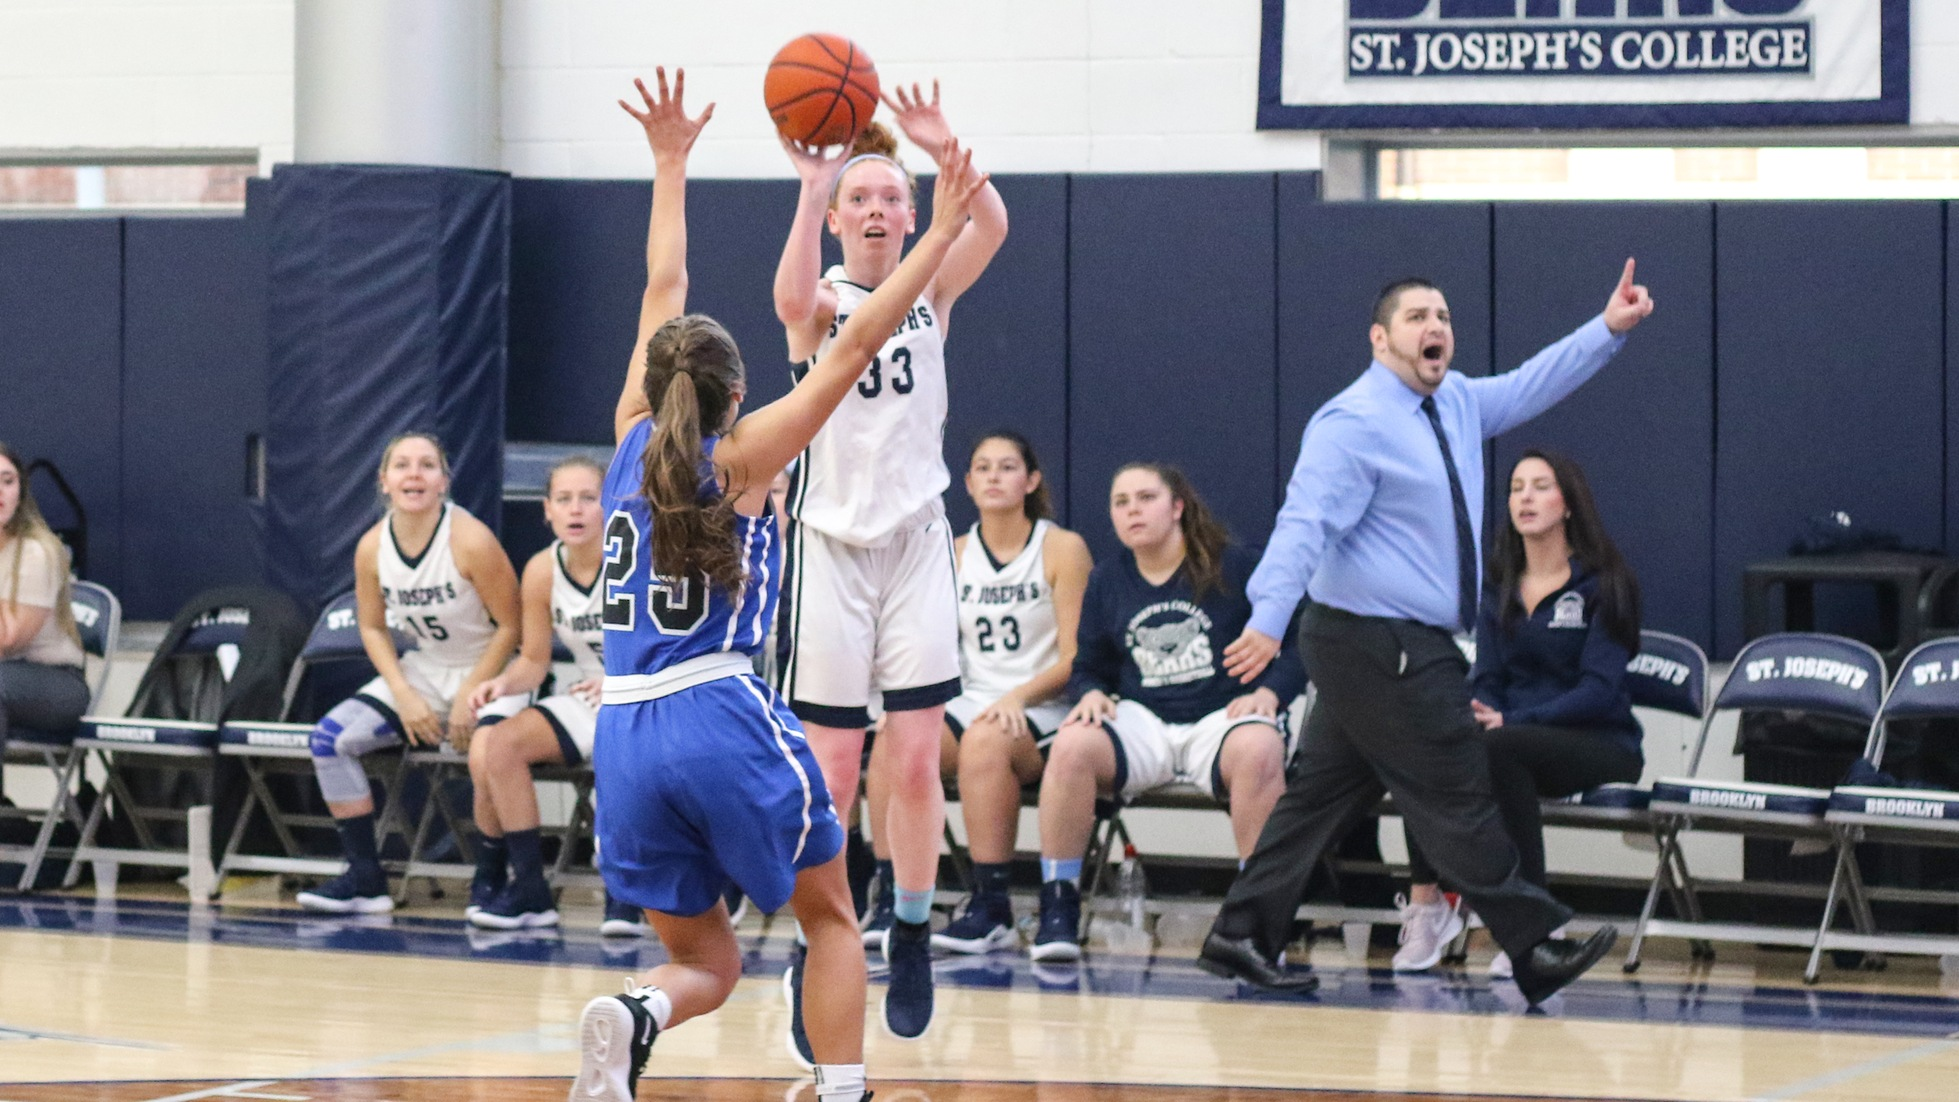 Women's Basketball Three-Game Streak Halted by Mount Saint Mary